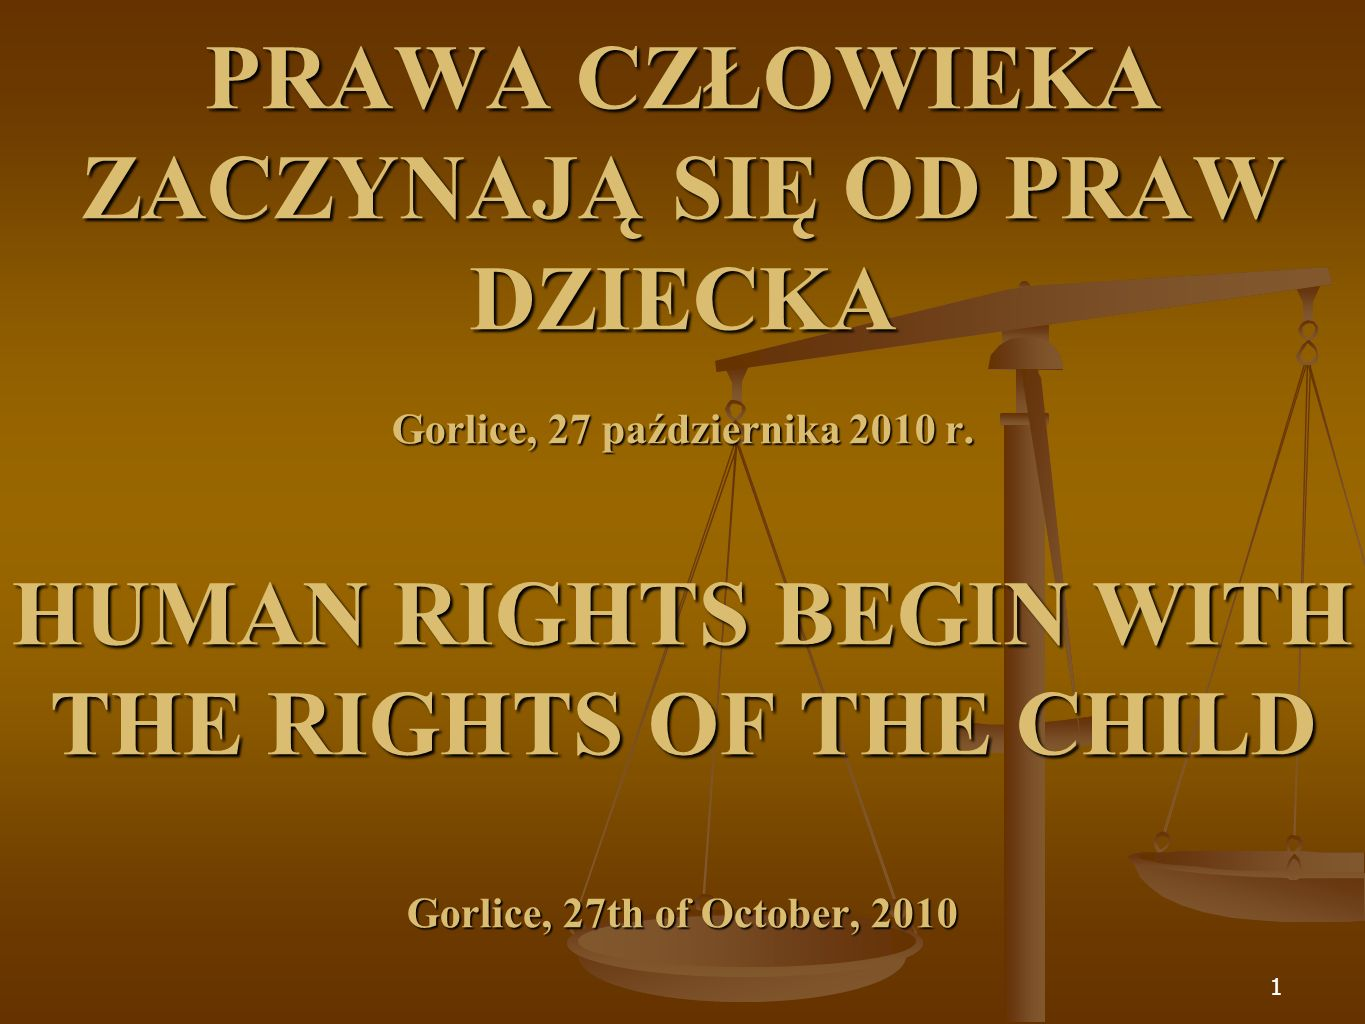 1 PRAWA CZŁOWIEKA ZACZYNAJĄ SIĘ OD PRAW DZIECKA Gorlice, 27 października 2010 r. HUMAN RIGHTS BEGIN WITH THE RIGHTS OF THE CHILD Gorlice, 27th of Octo